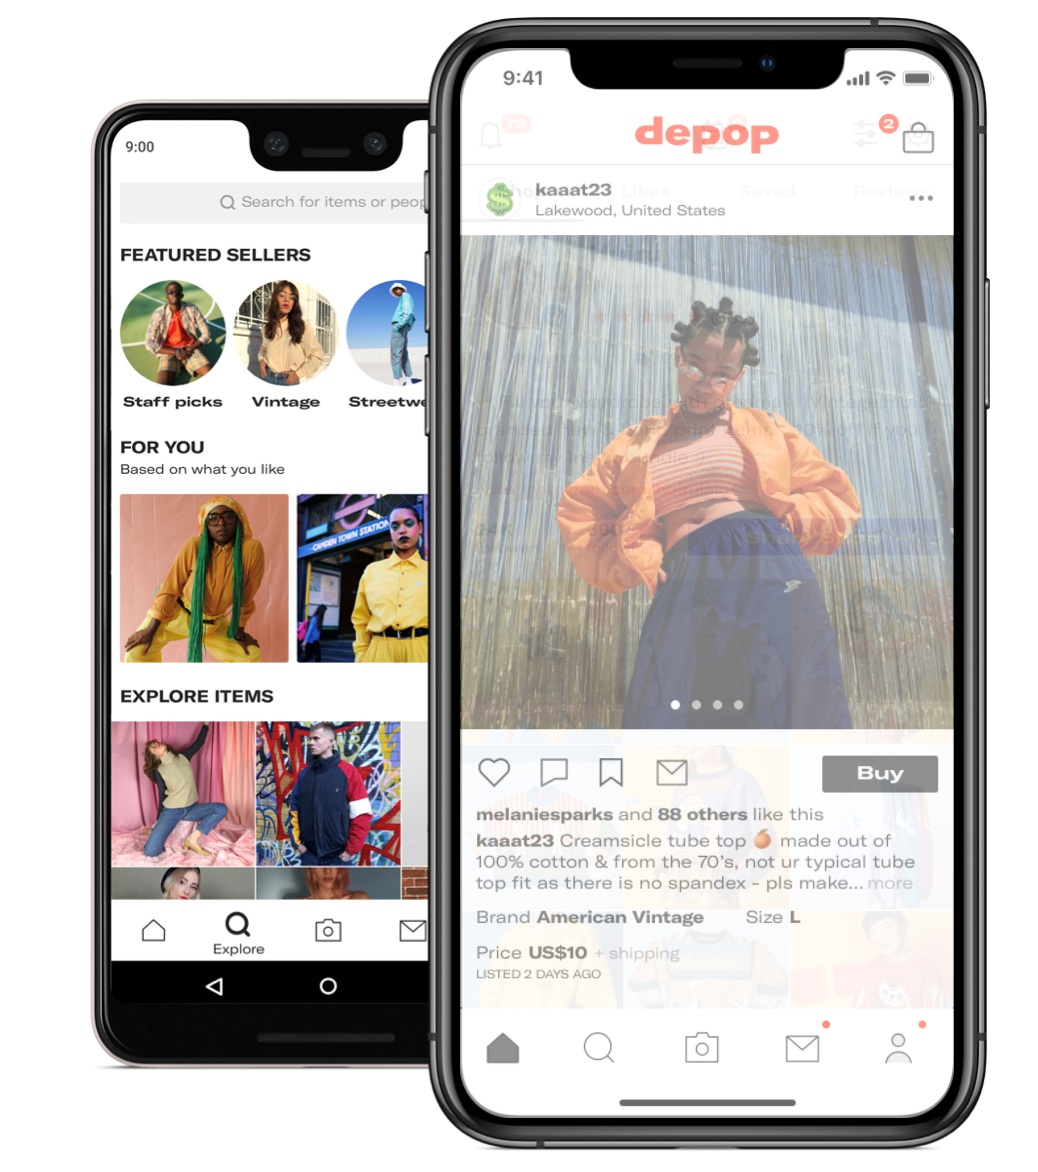 62f7b30b9bb0 Depop: Depop is mostly known in this kind of inner, lowkey, indie cool-kid  circle. Although it's officially an app and not a website, Depop has got it  all ...